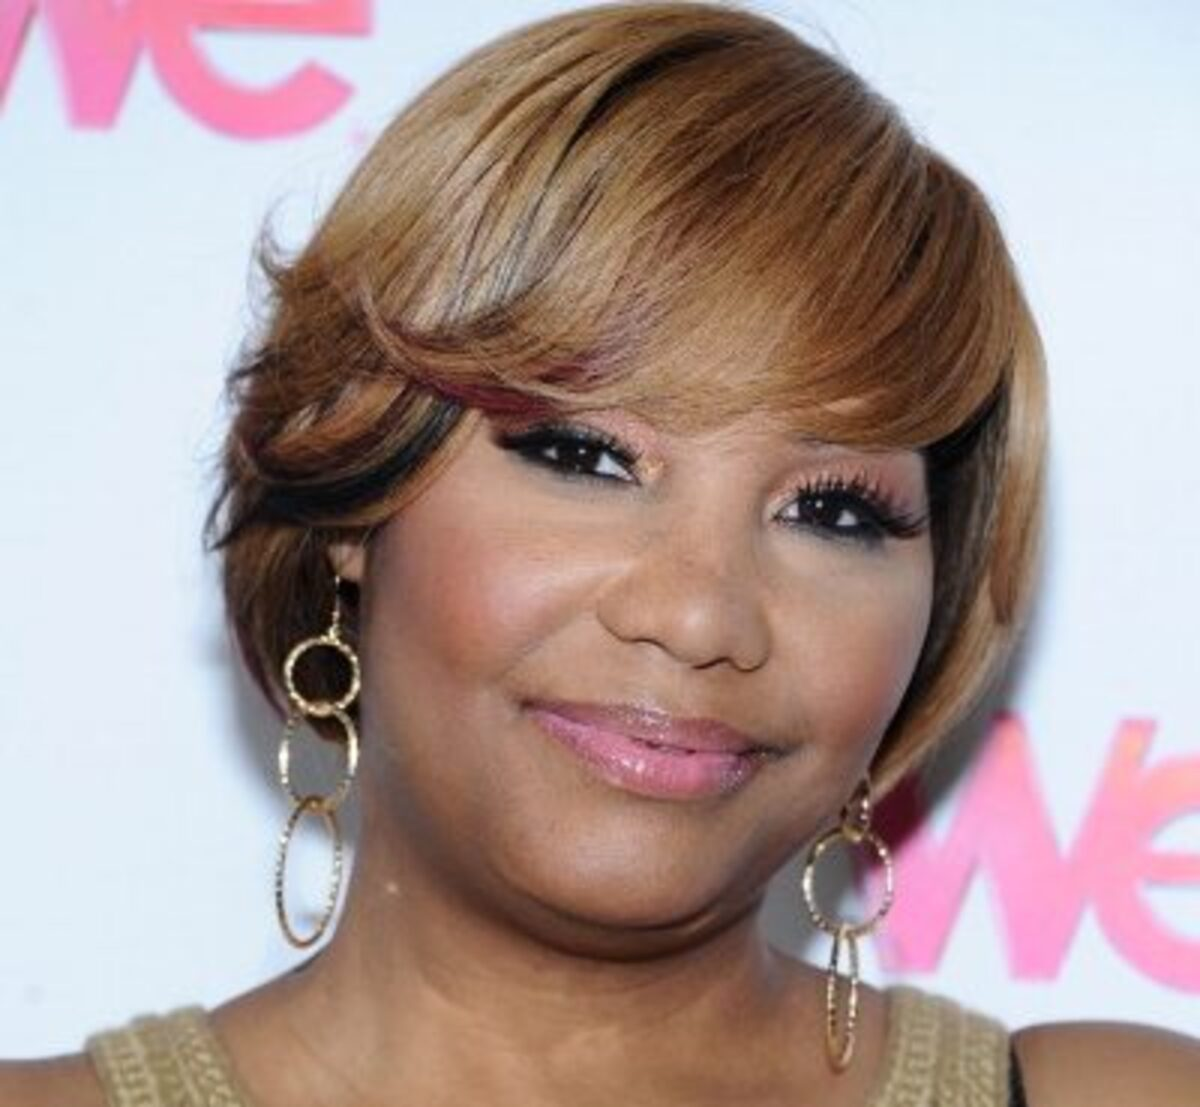 Traci Braxton Lots A Lot Of Weight And Fans Are Praising Her New Figure - See The Photo